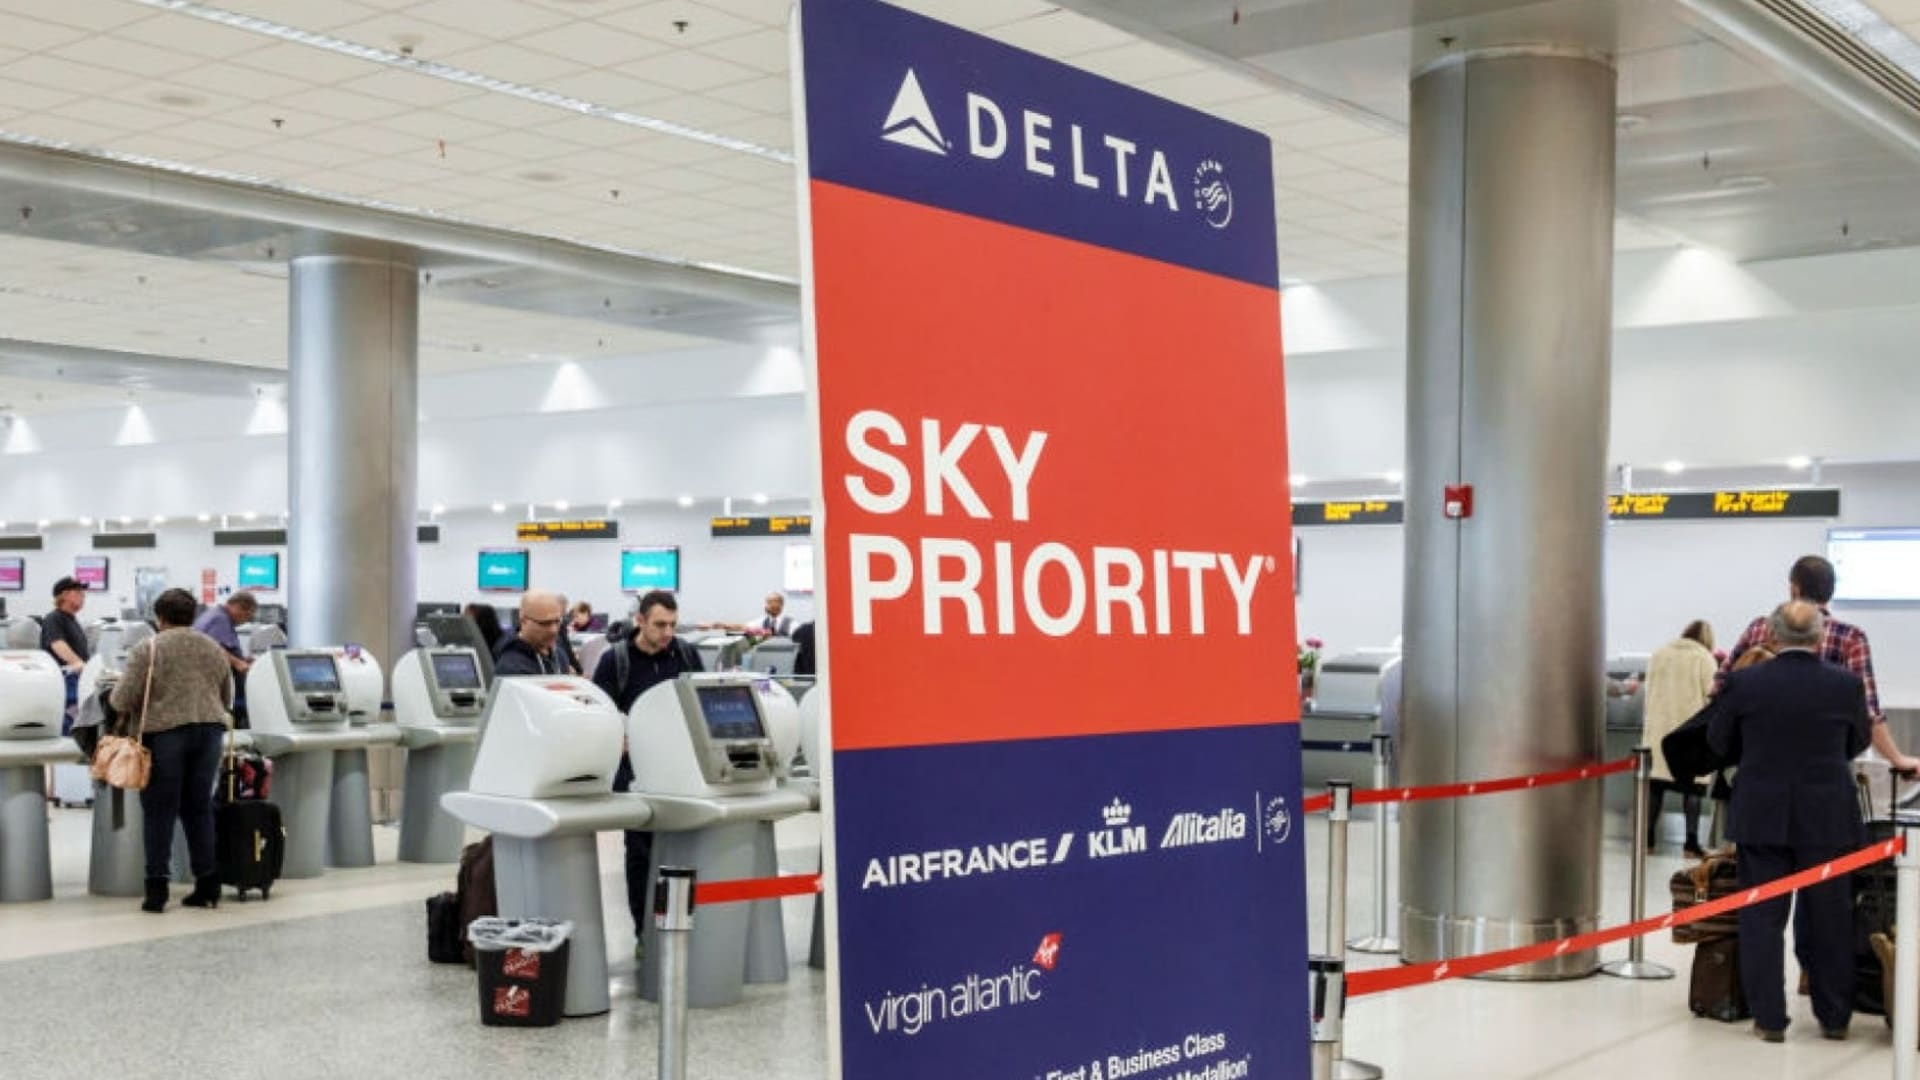 After 30 Years, Delta Is Making a Big Change to Its SkyMiles Program That No Airline Has Ever Tried